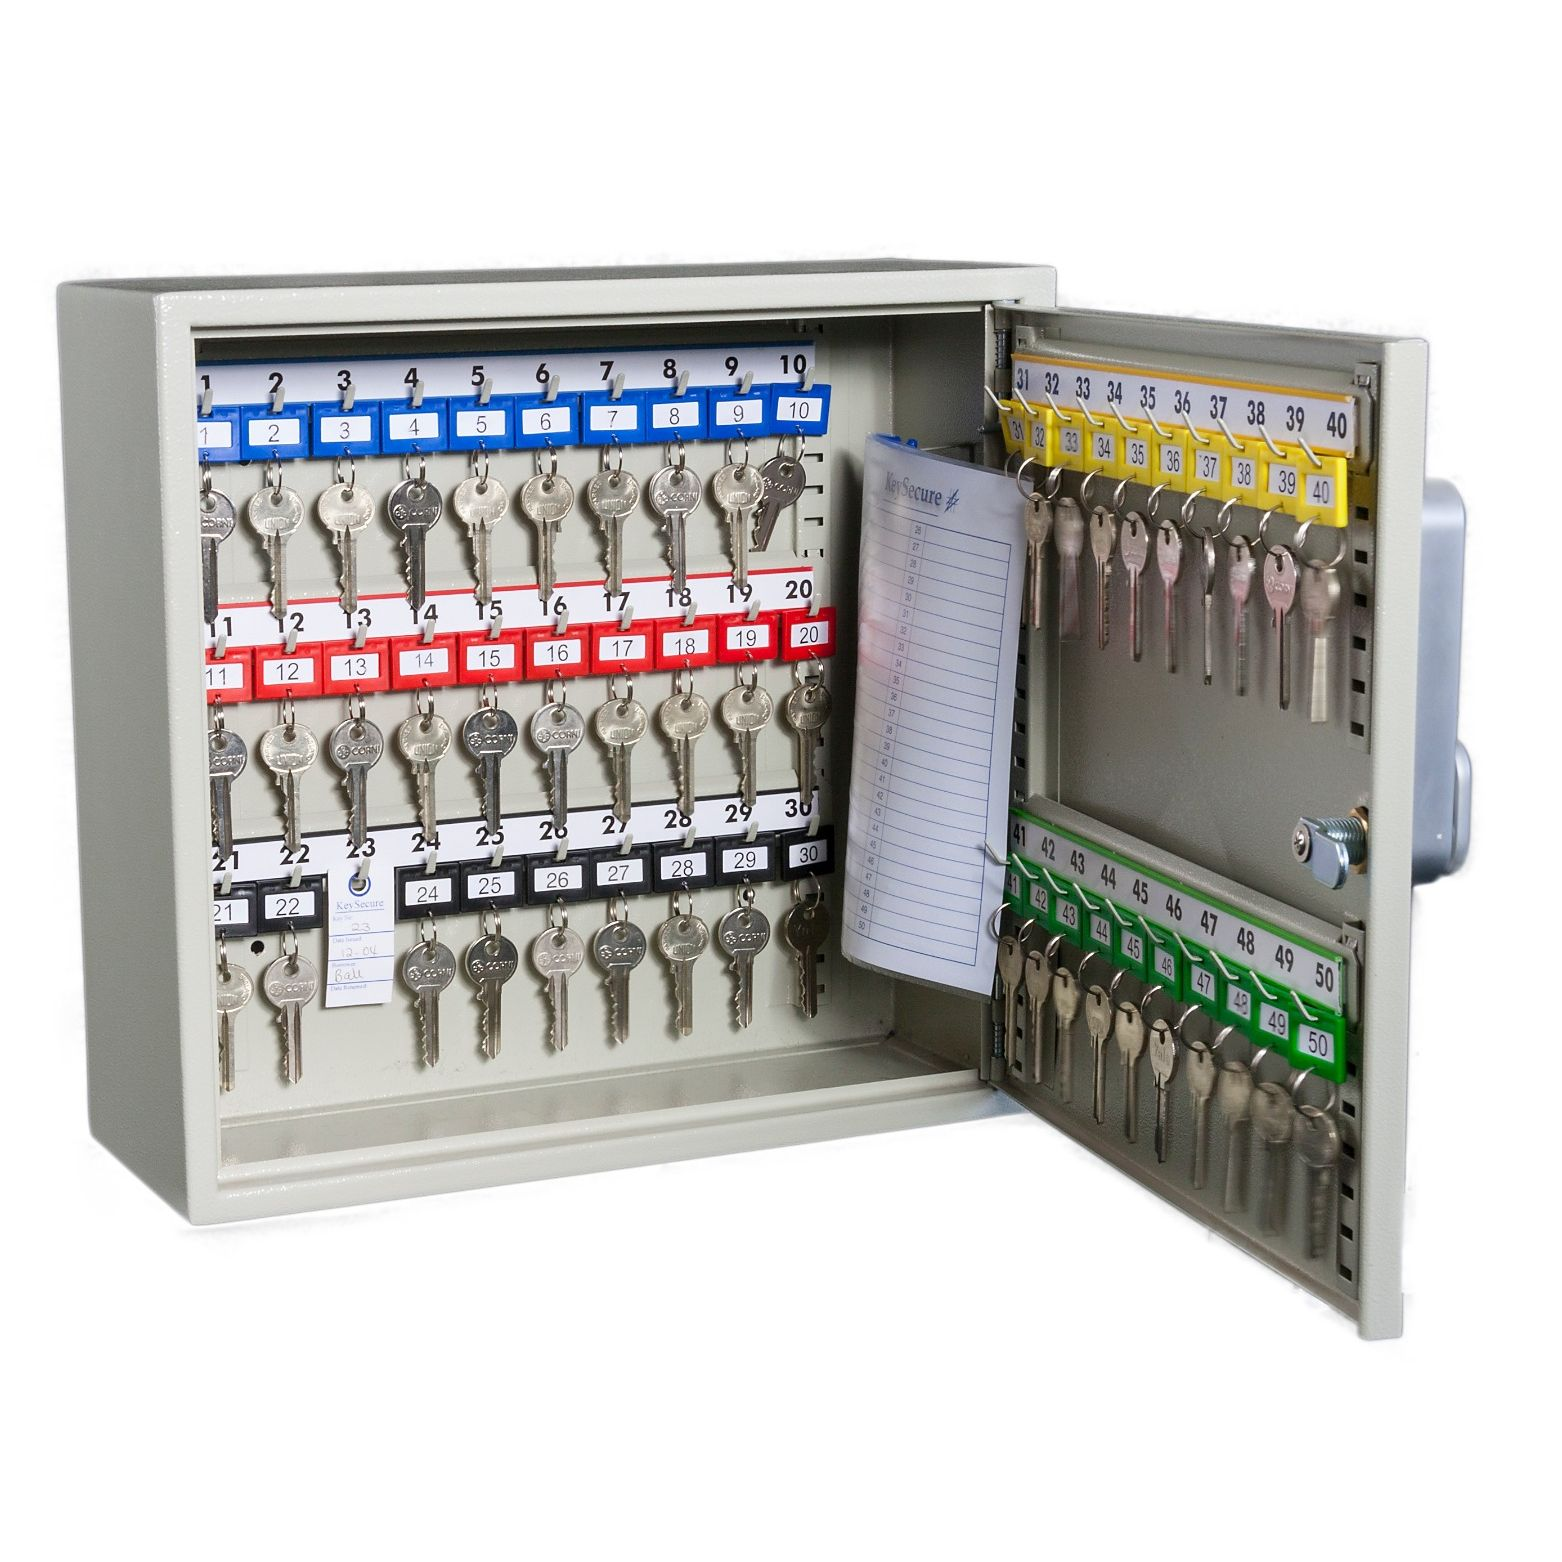 extra_deep_key_cabinets_with_electronic_cam_lock_50_hook_55_x_38_x_16.5cm_open.jpg